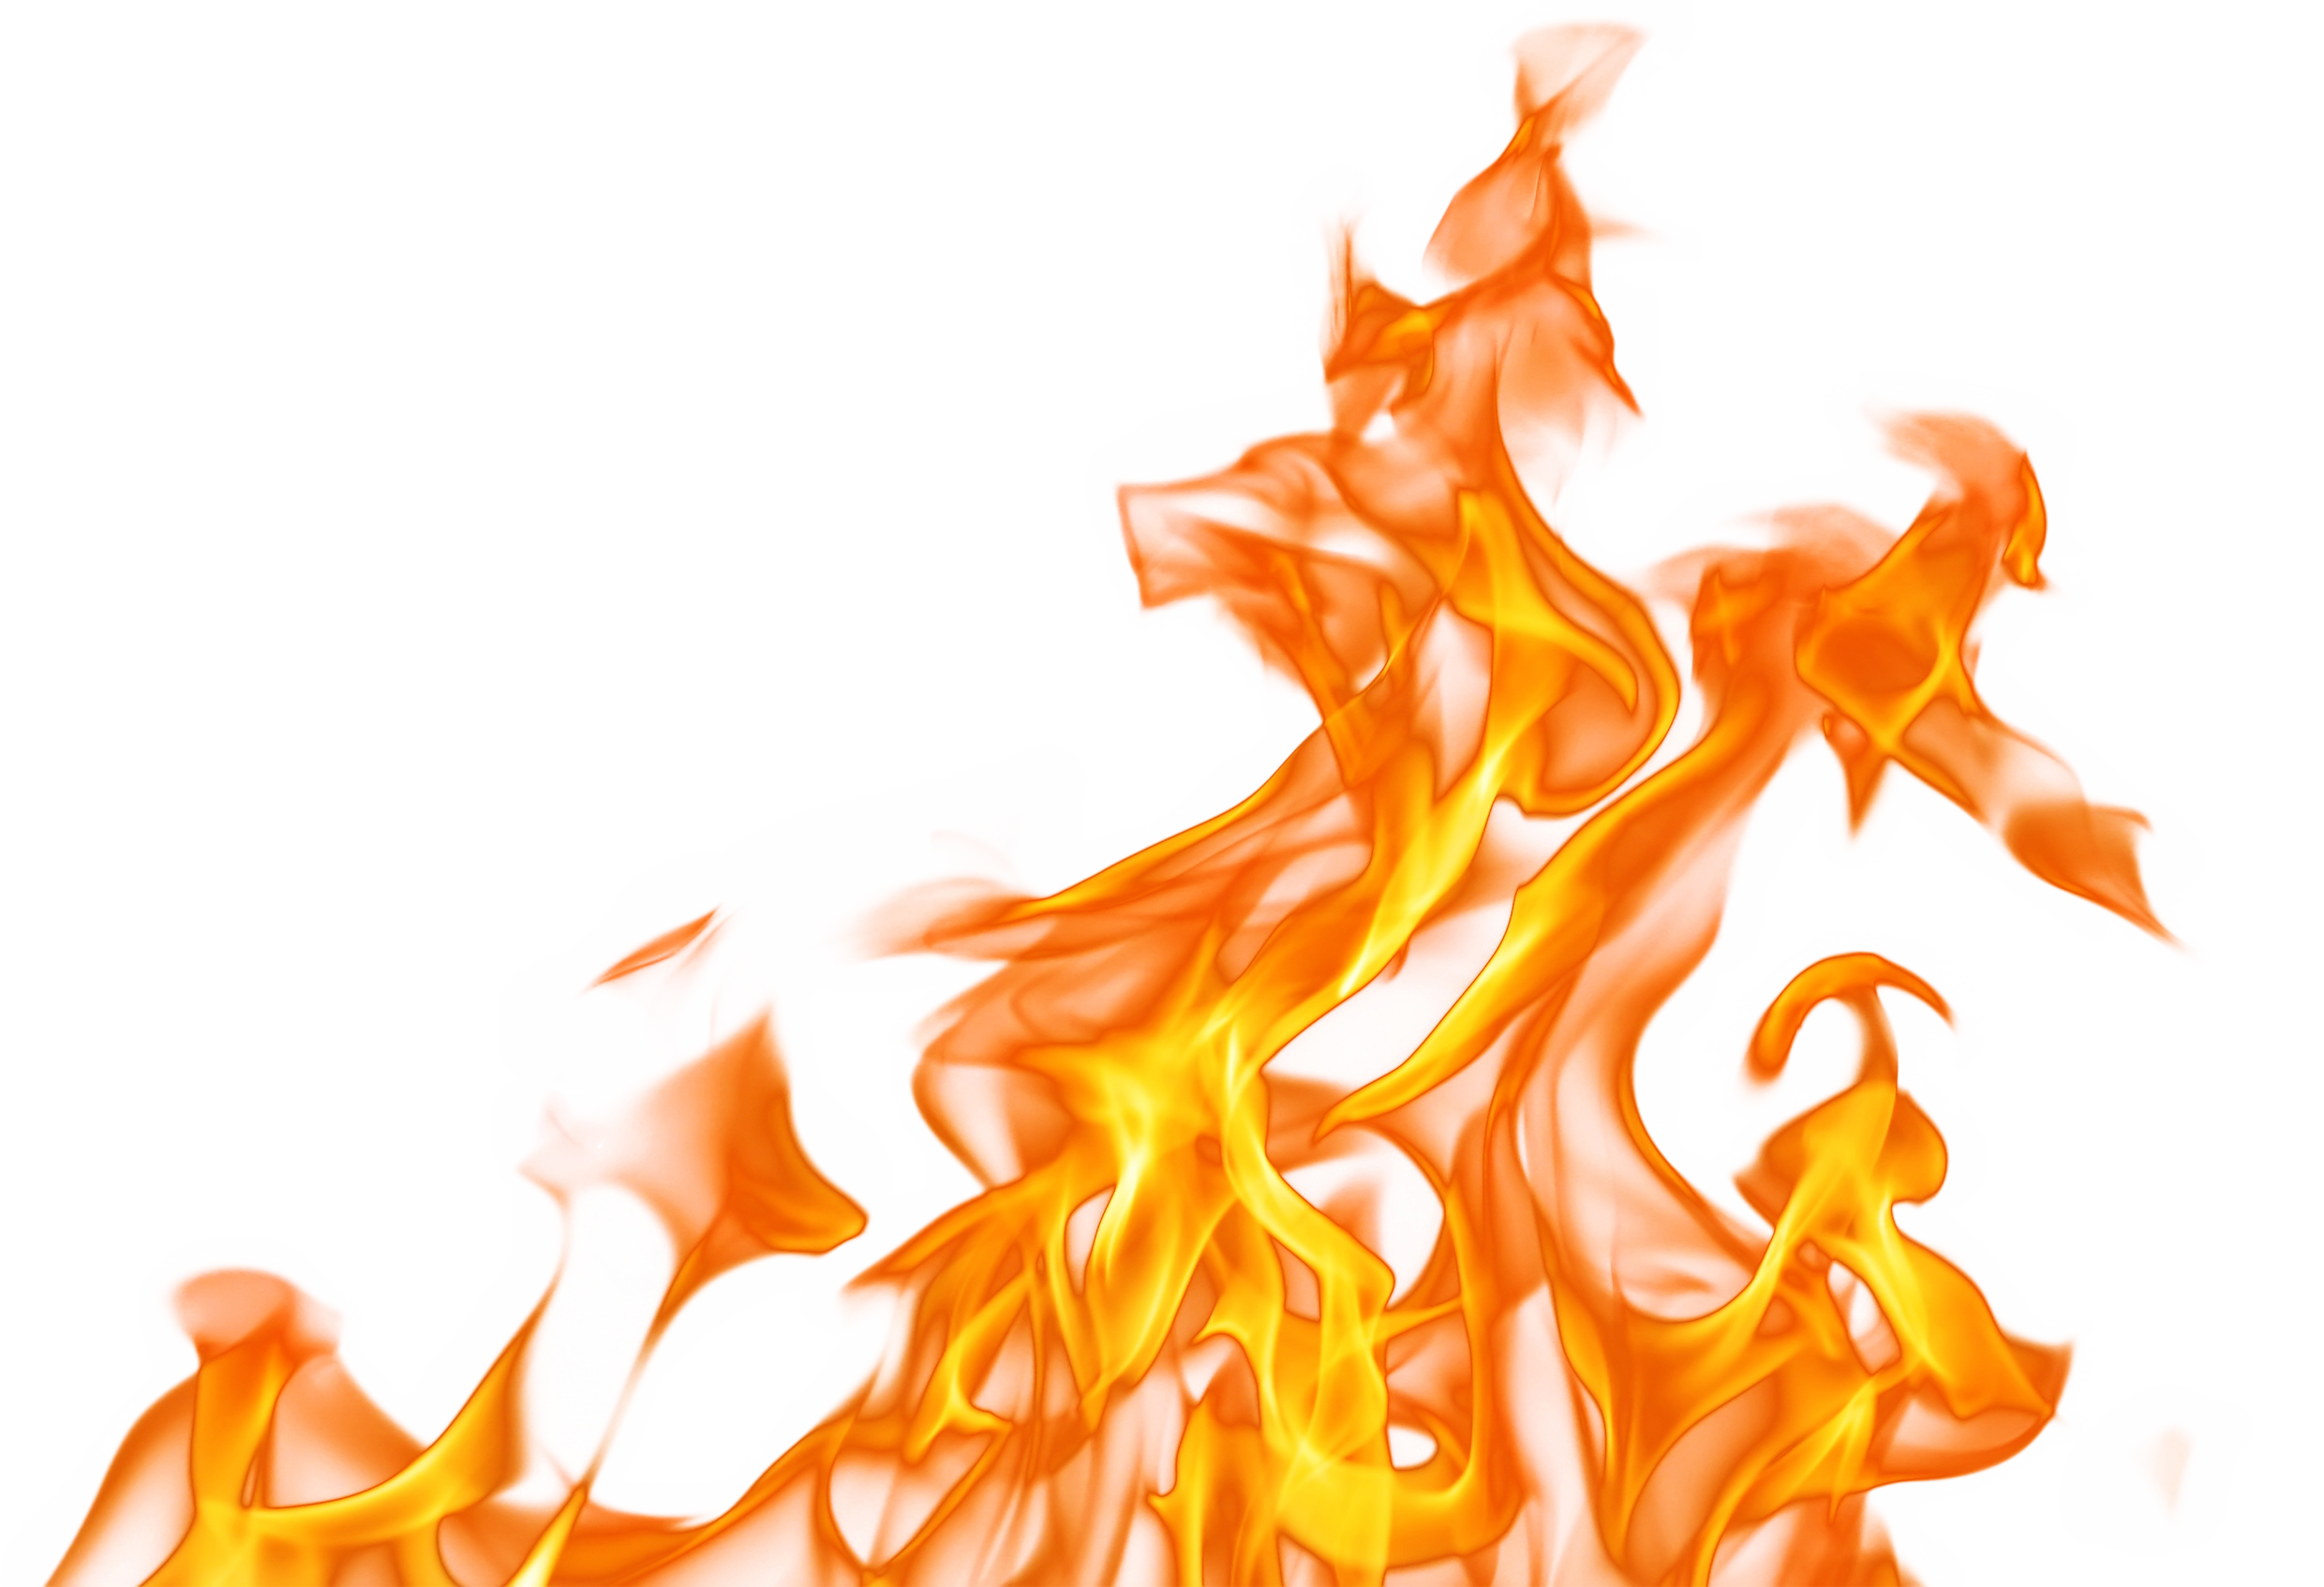 Fire png images. Flame